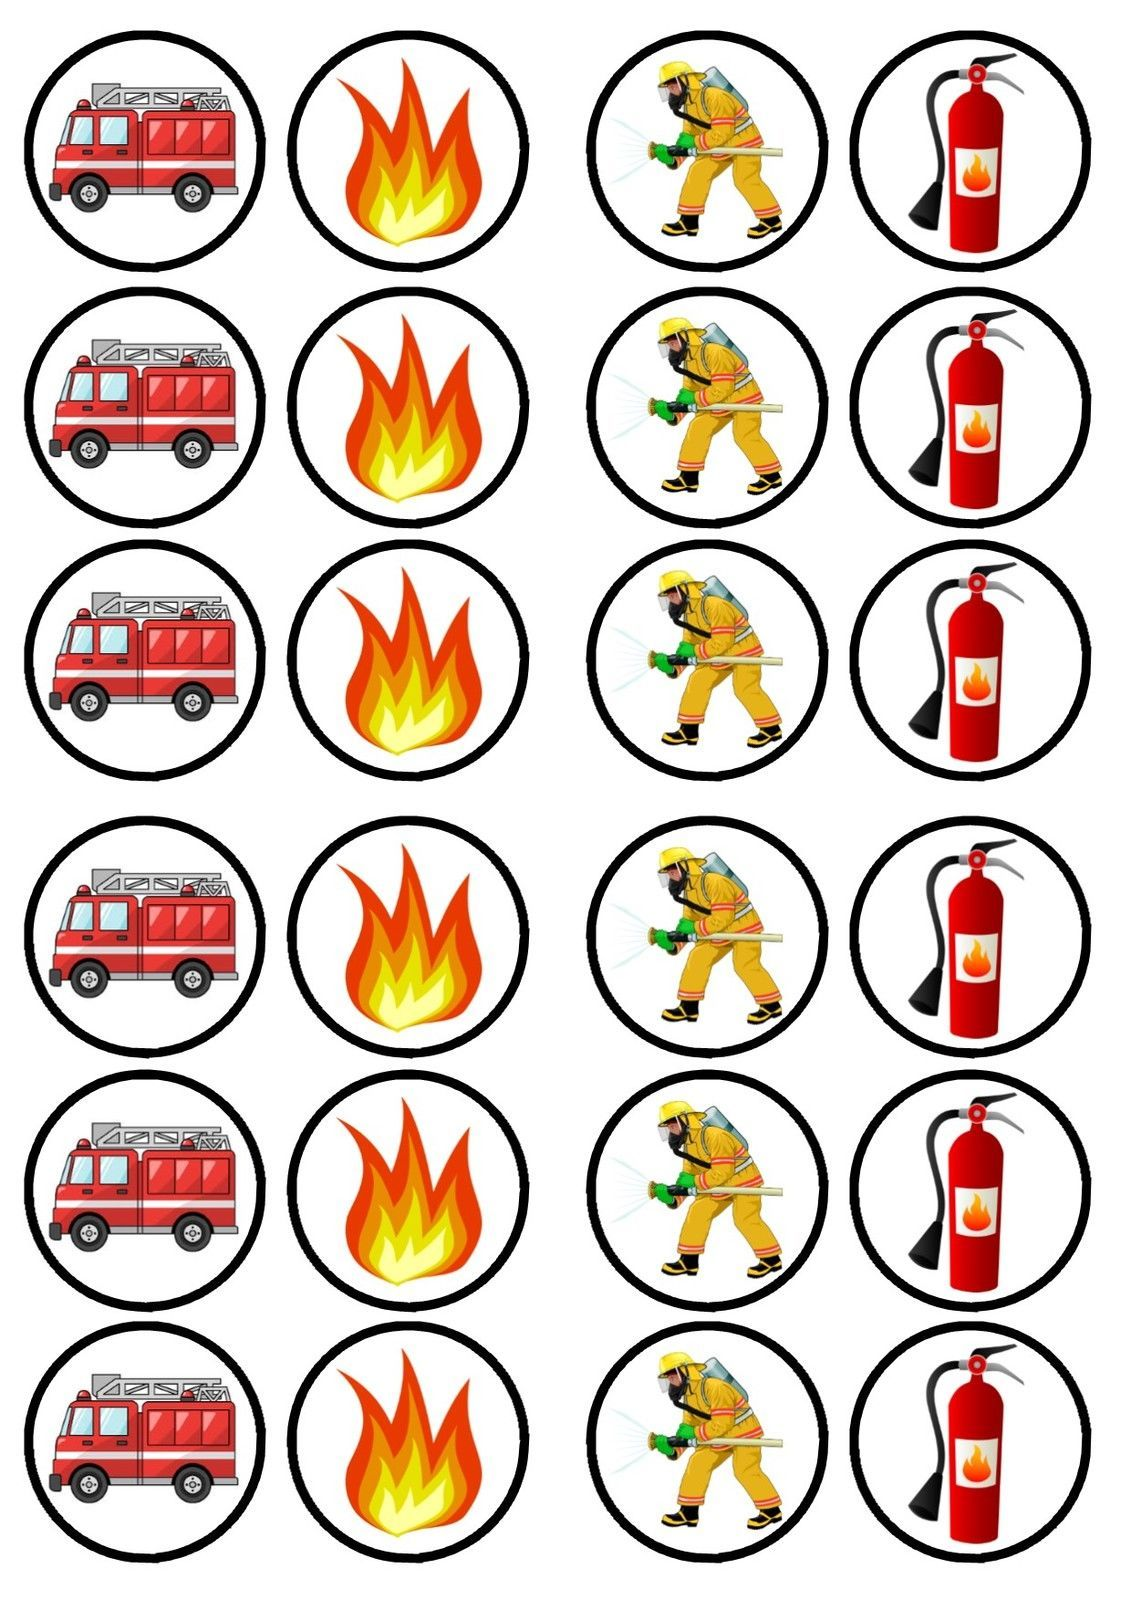 Details About Fireman Fire Engine Edible Premium Sweetened Wafer Paper Cupcake Toppers